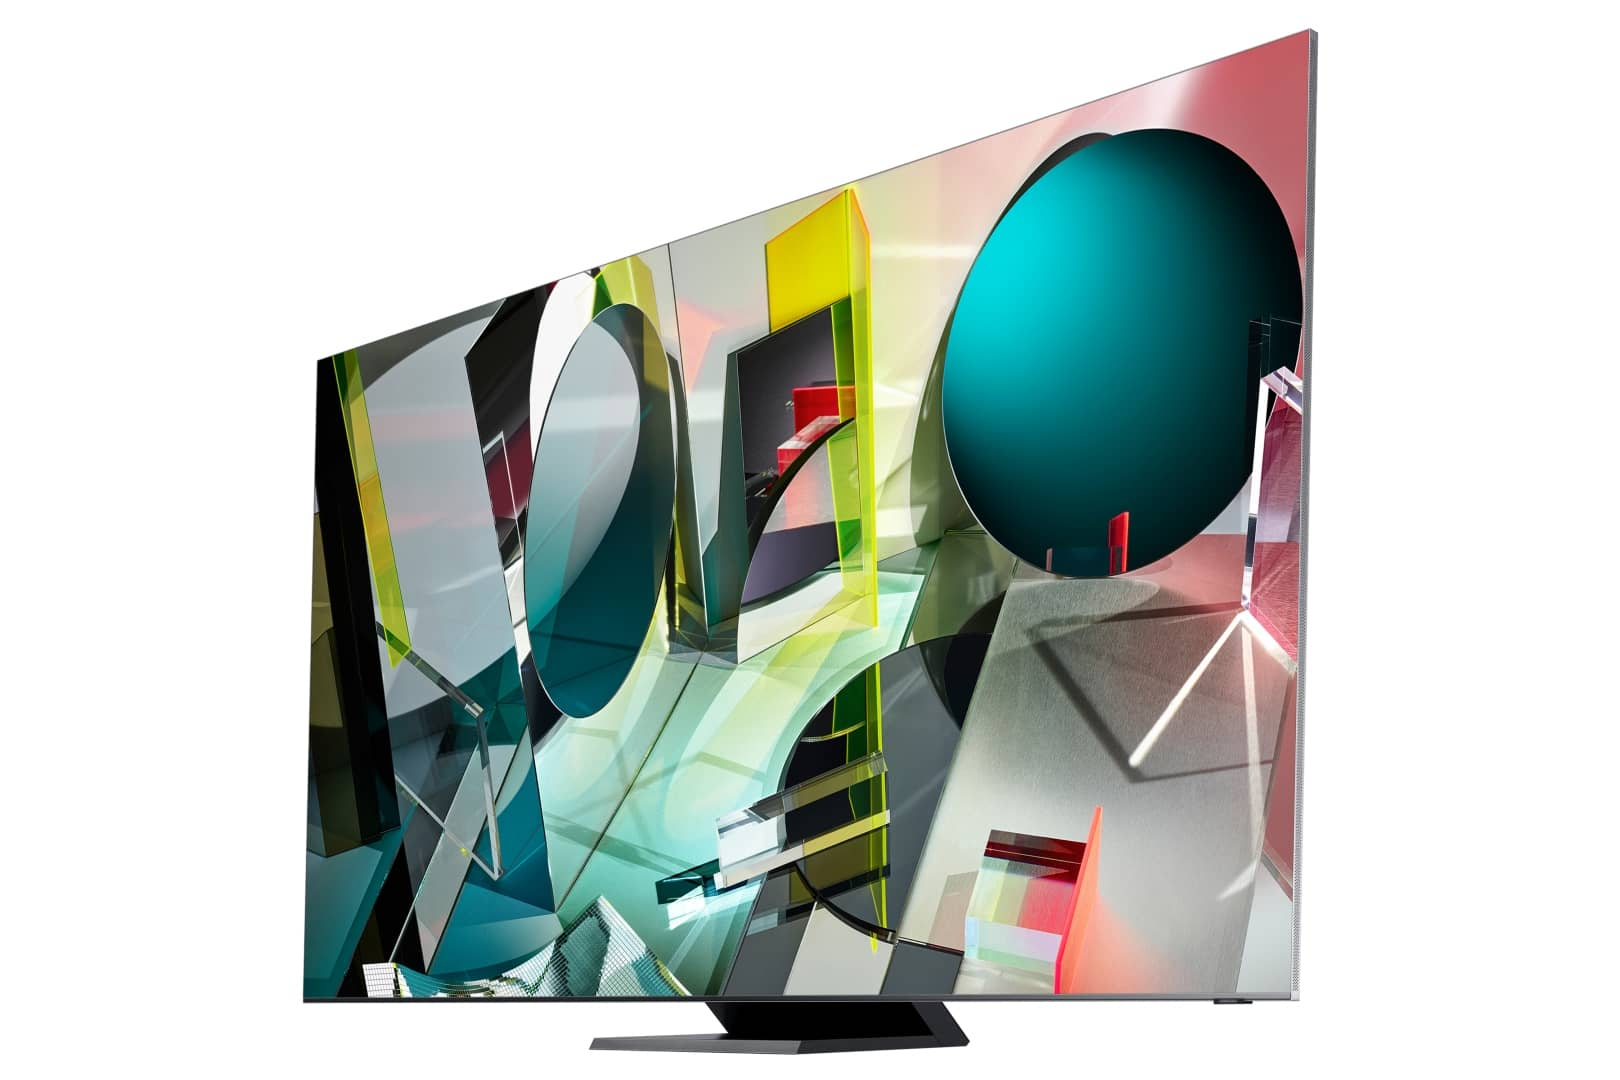 Samsung TV 8K QLED 75Q950TSQTA1 EU 005 Dynamic1 Black